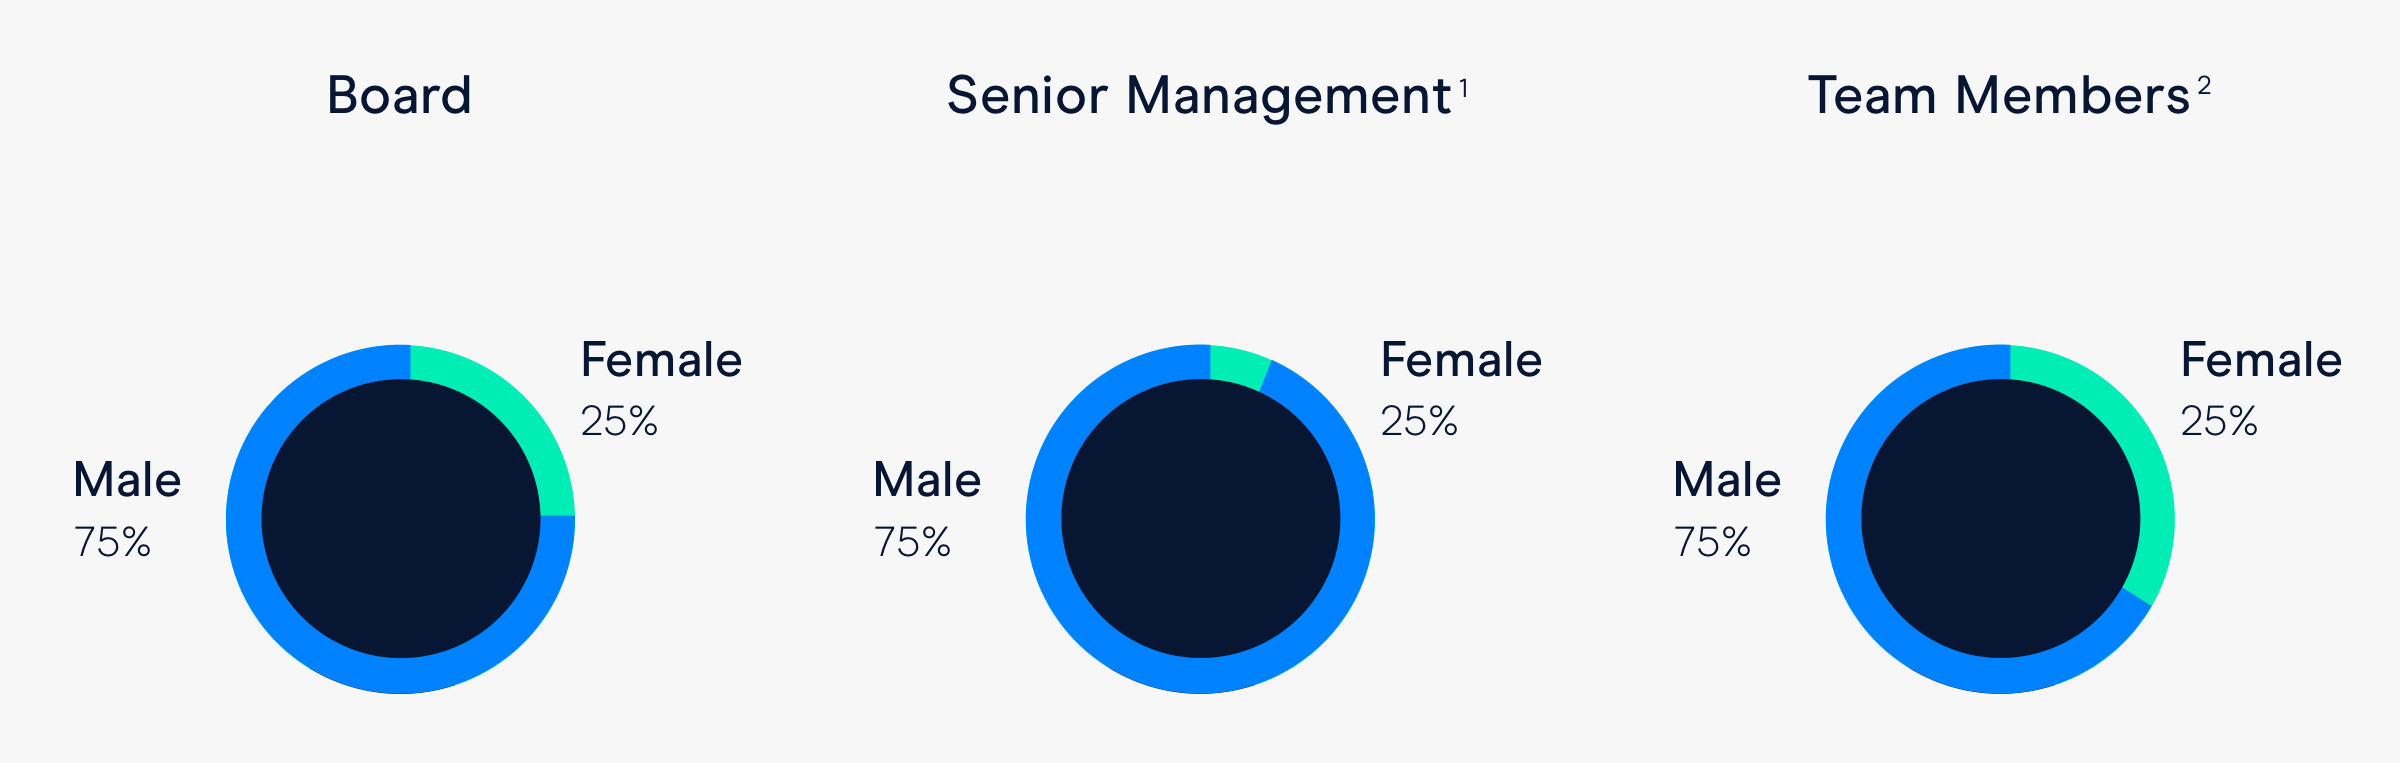 Team Members (2): Male 75%, Female 25%. Board: Male 75%, Female 25%. Senior Management (1): Male 75%, Female 25%